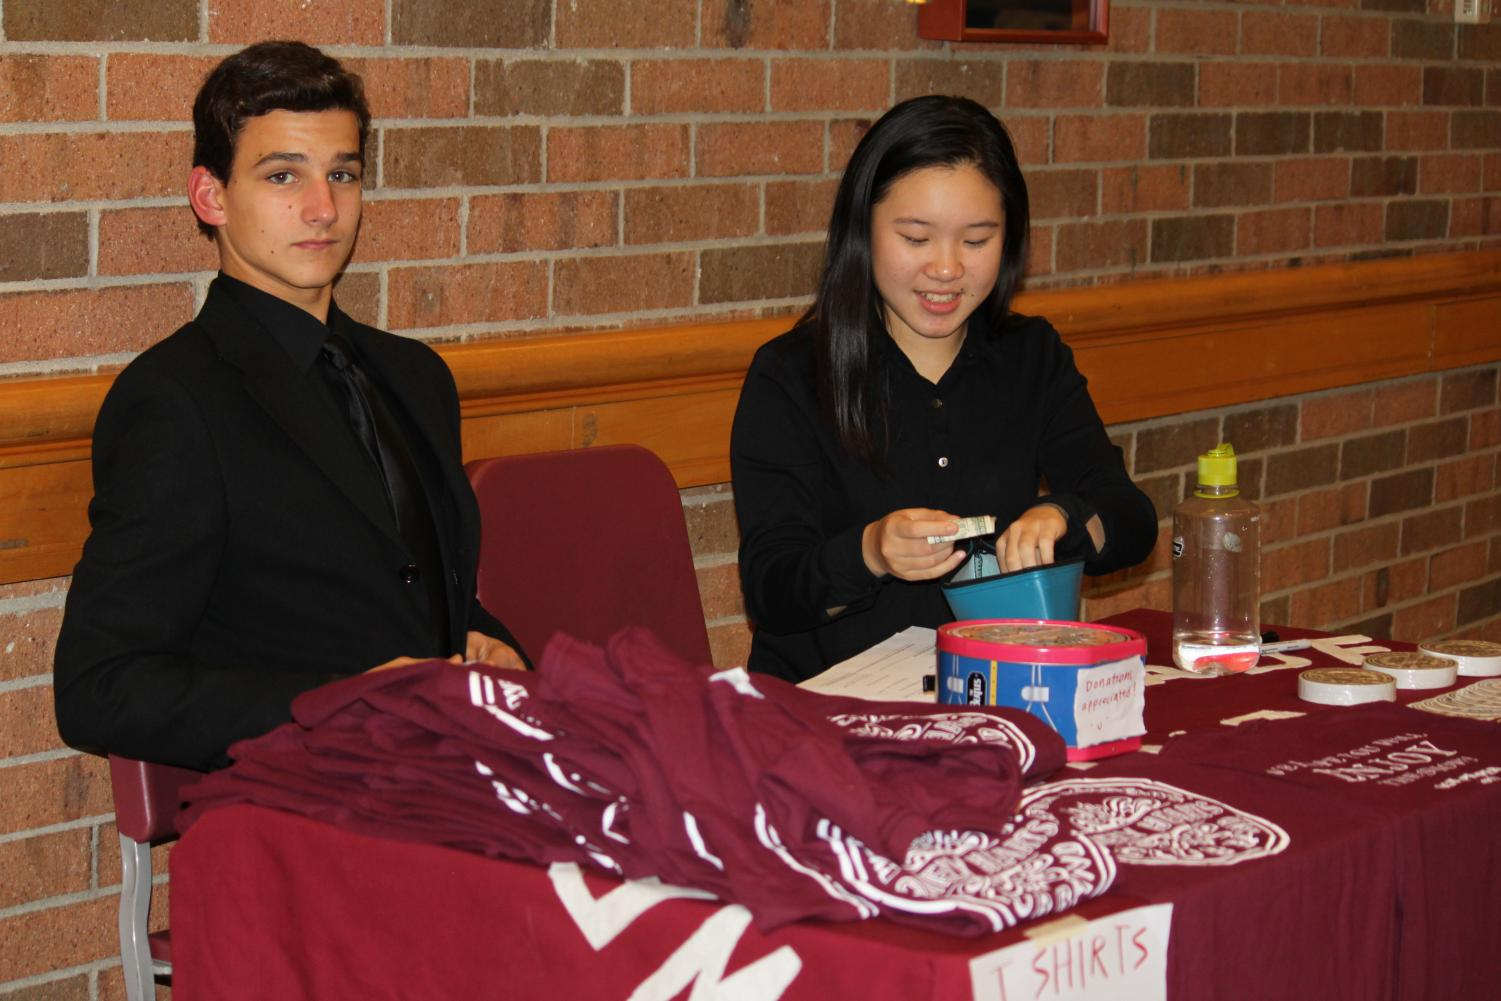 Junior+Christine+Ji+and+sophomore+Collin+Pickersgill+sell+stickers+and+t-shirts+to+raise+money.